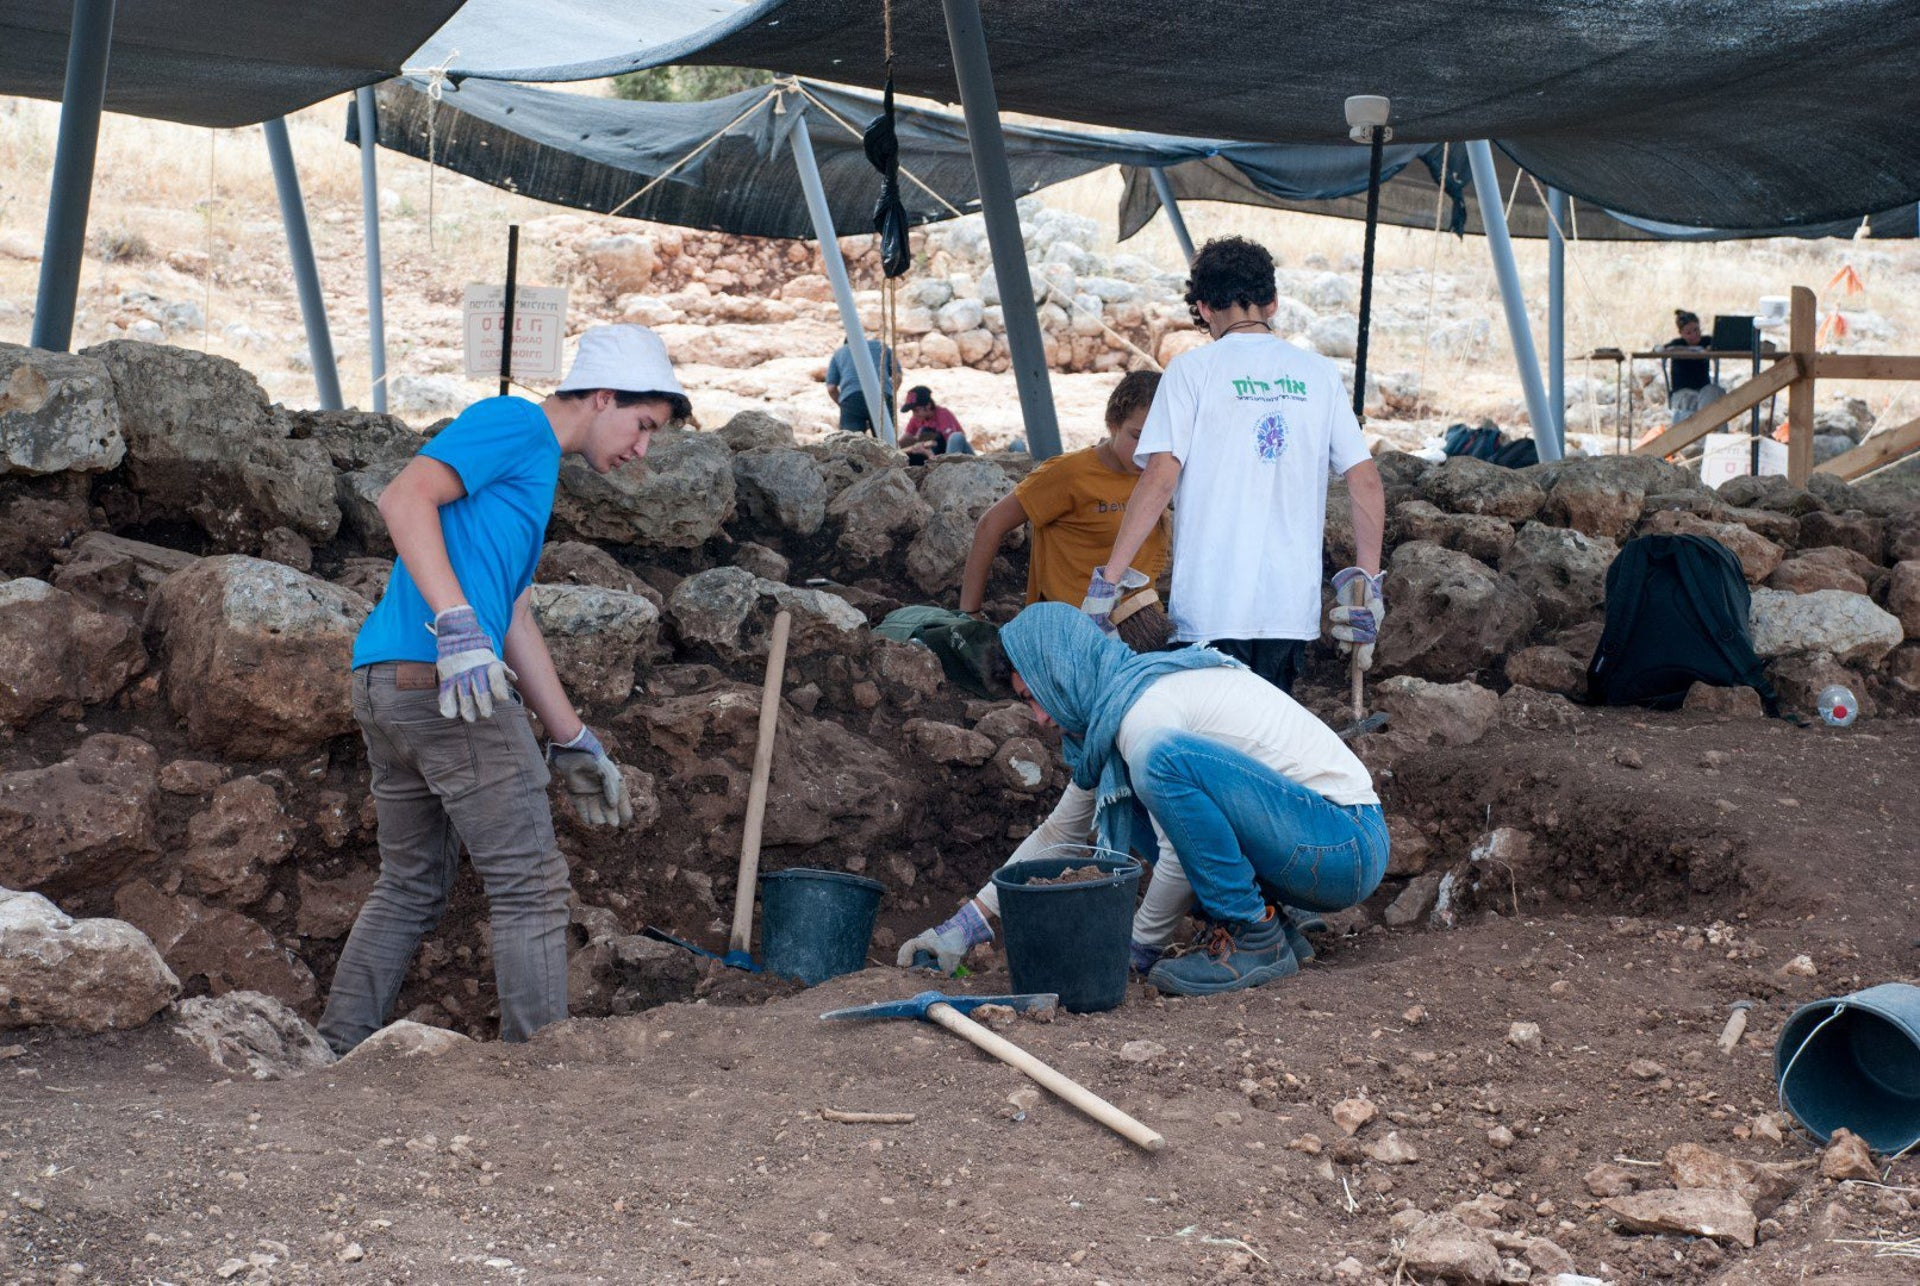 Students participating in excavation of 2700-year-old water system with figurine carvings found in Rosh HaAyin.